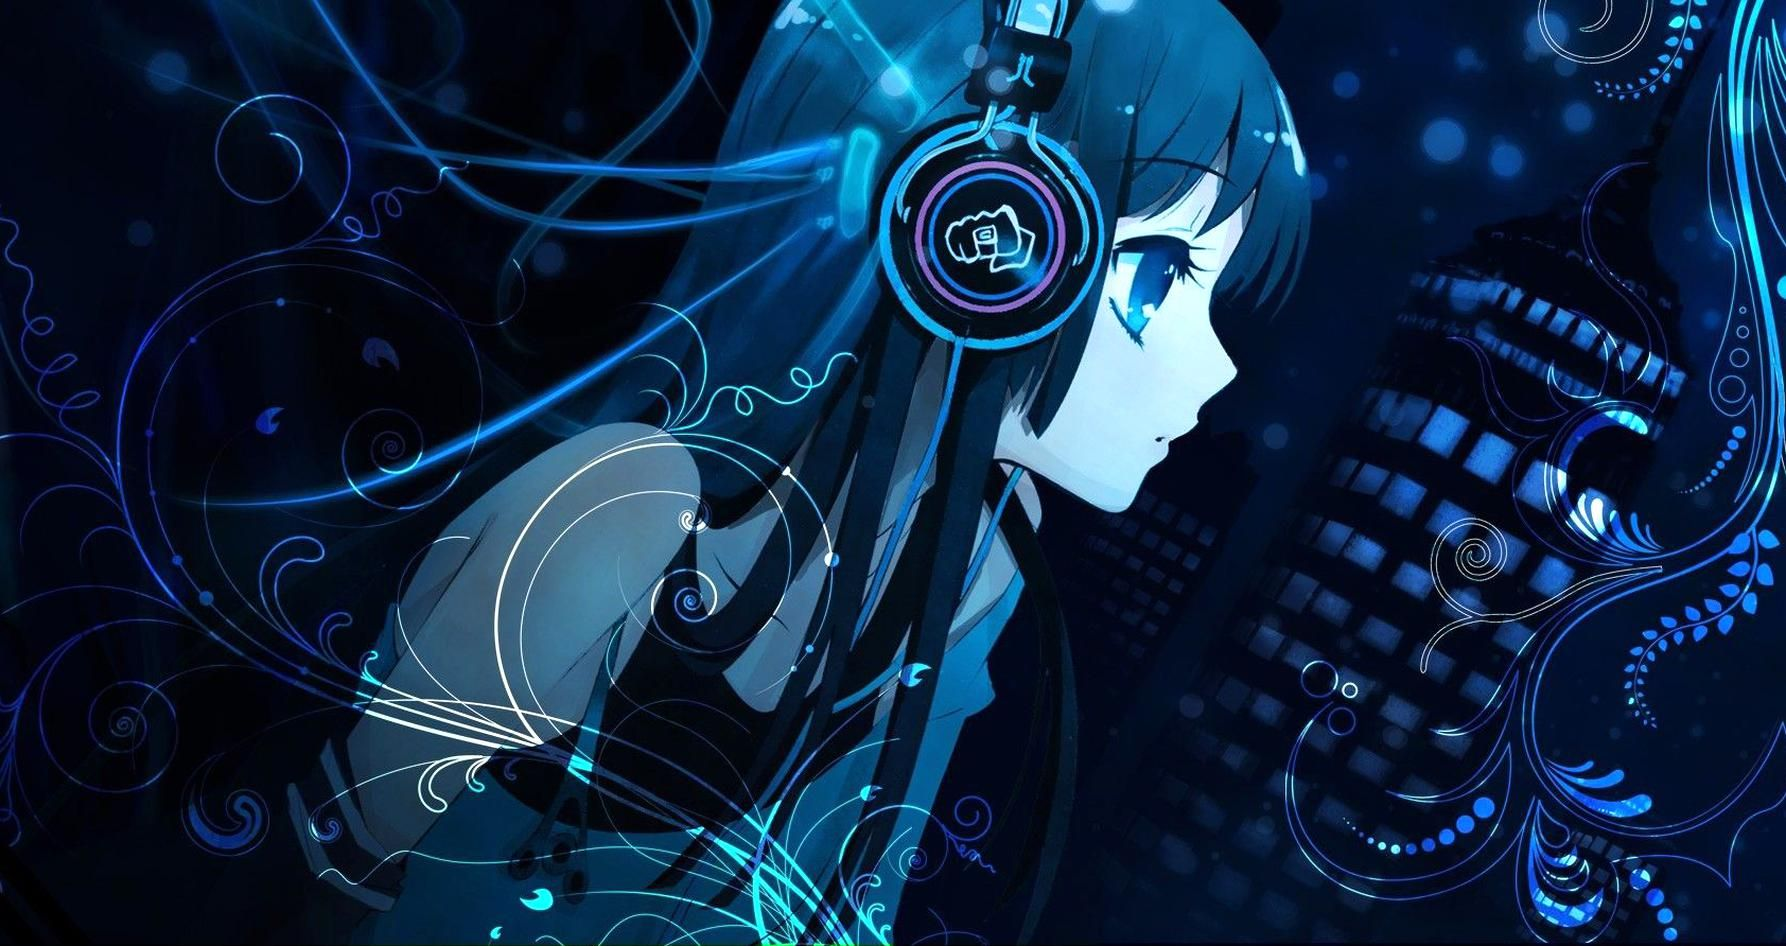 Anime Music Girl Wallpaper in high Quality Anime Wide HD Wallpapers